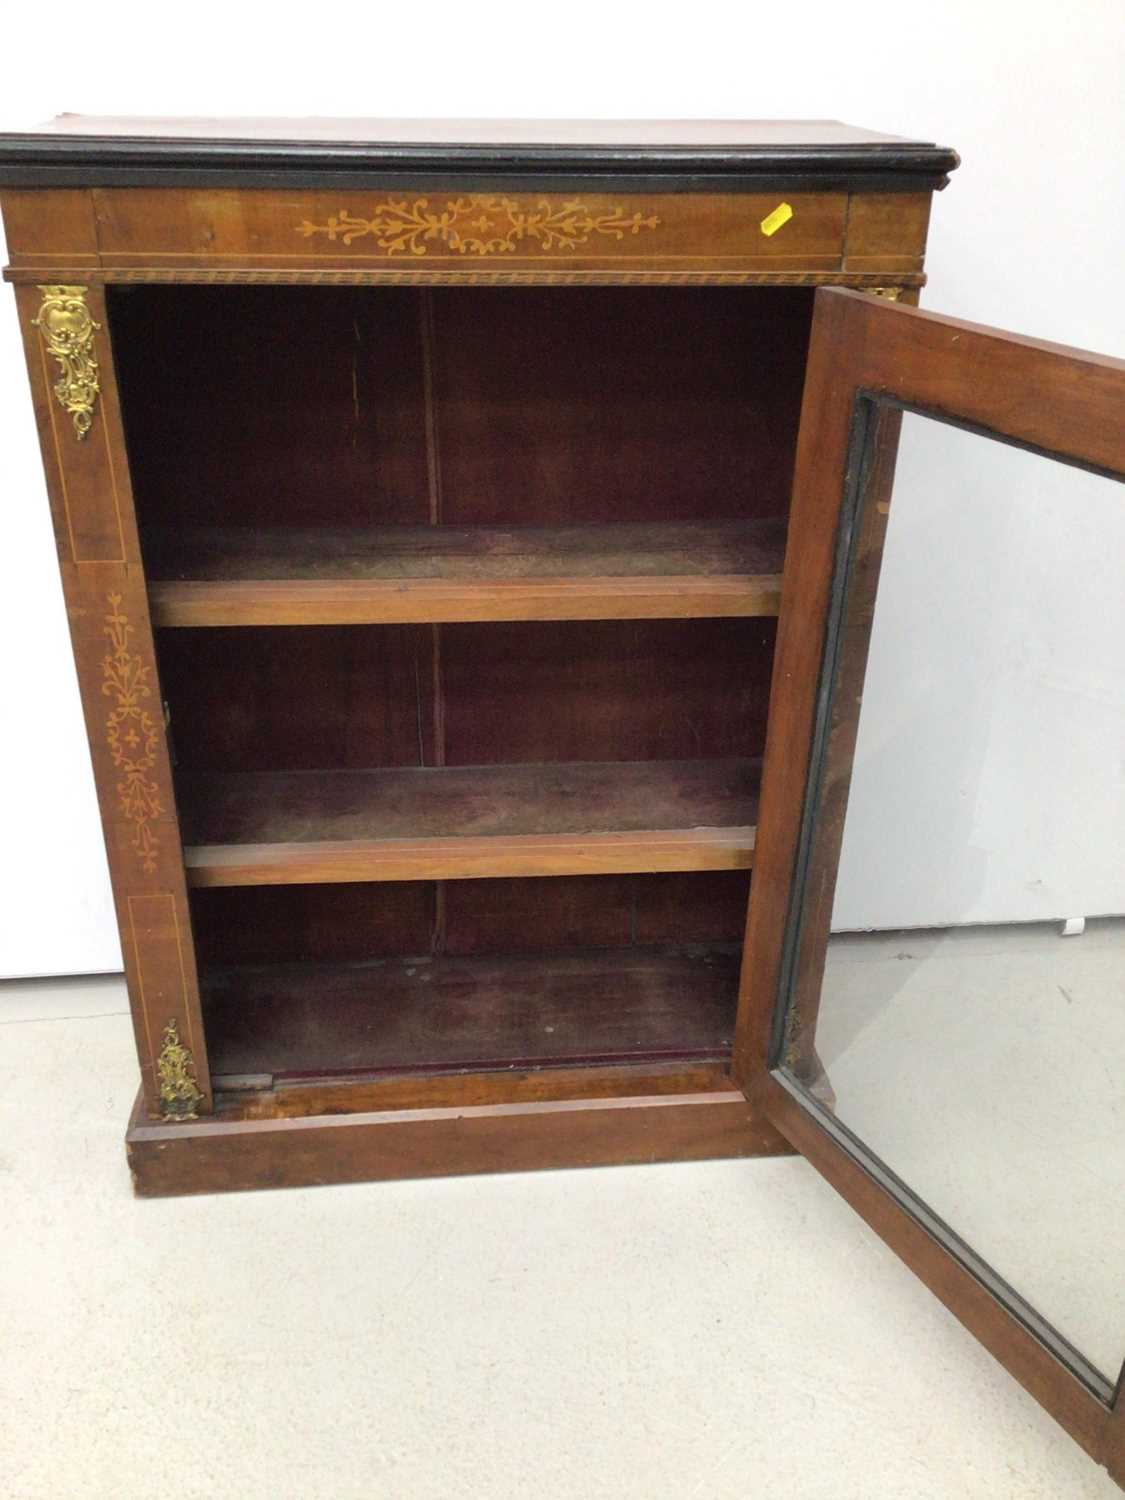 Victorian walnut and inlaid pier cabinet - Image 4 of 5